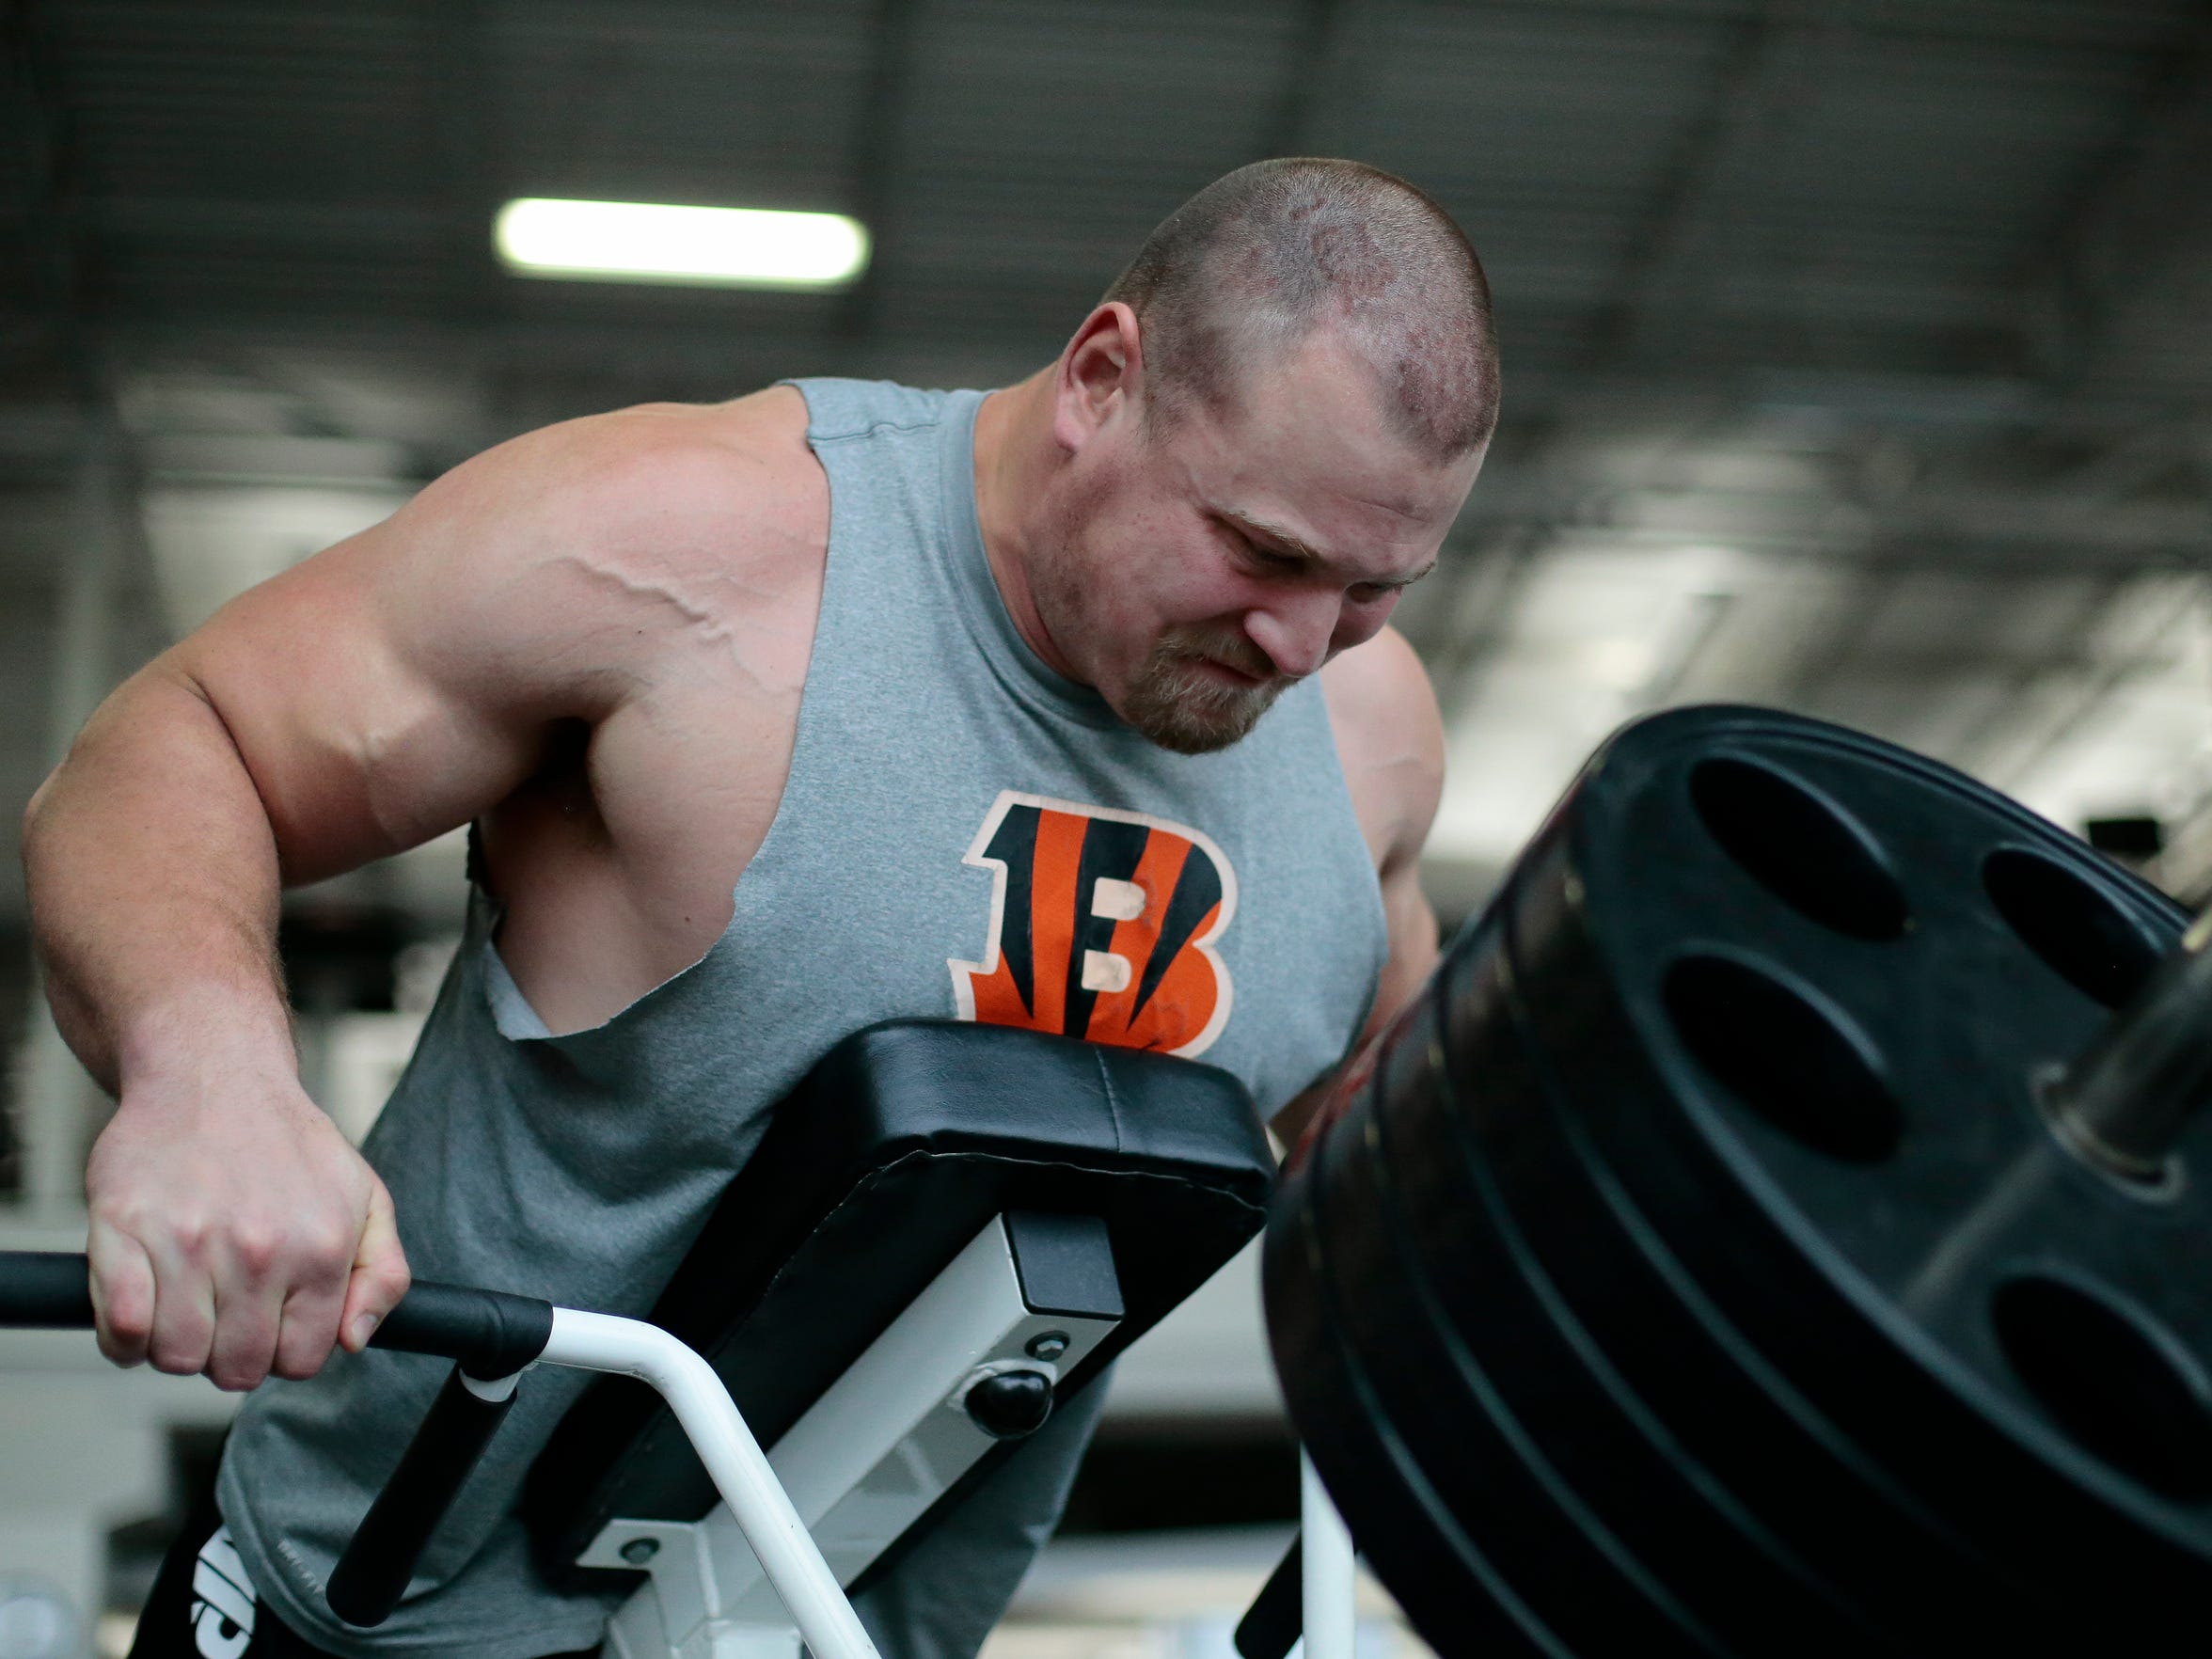 """Cincinnati Bengals right guard Kevin Zeitler lifts through an upper body workout at the Princeton Club in New Berlin, Wis., on Wednesday, April 13, 2016. At 6' 4"""" tall and 315 pounds, Zeitler prides himself on the lean body mass he's achieved ahead of official team actives in Cincinnati."""